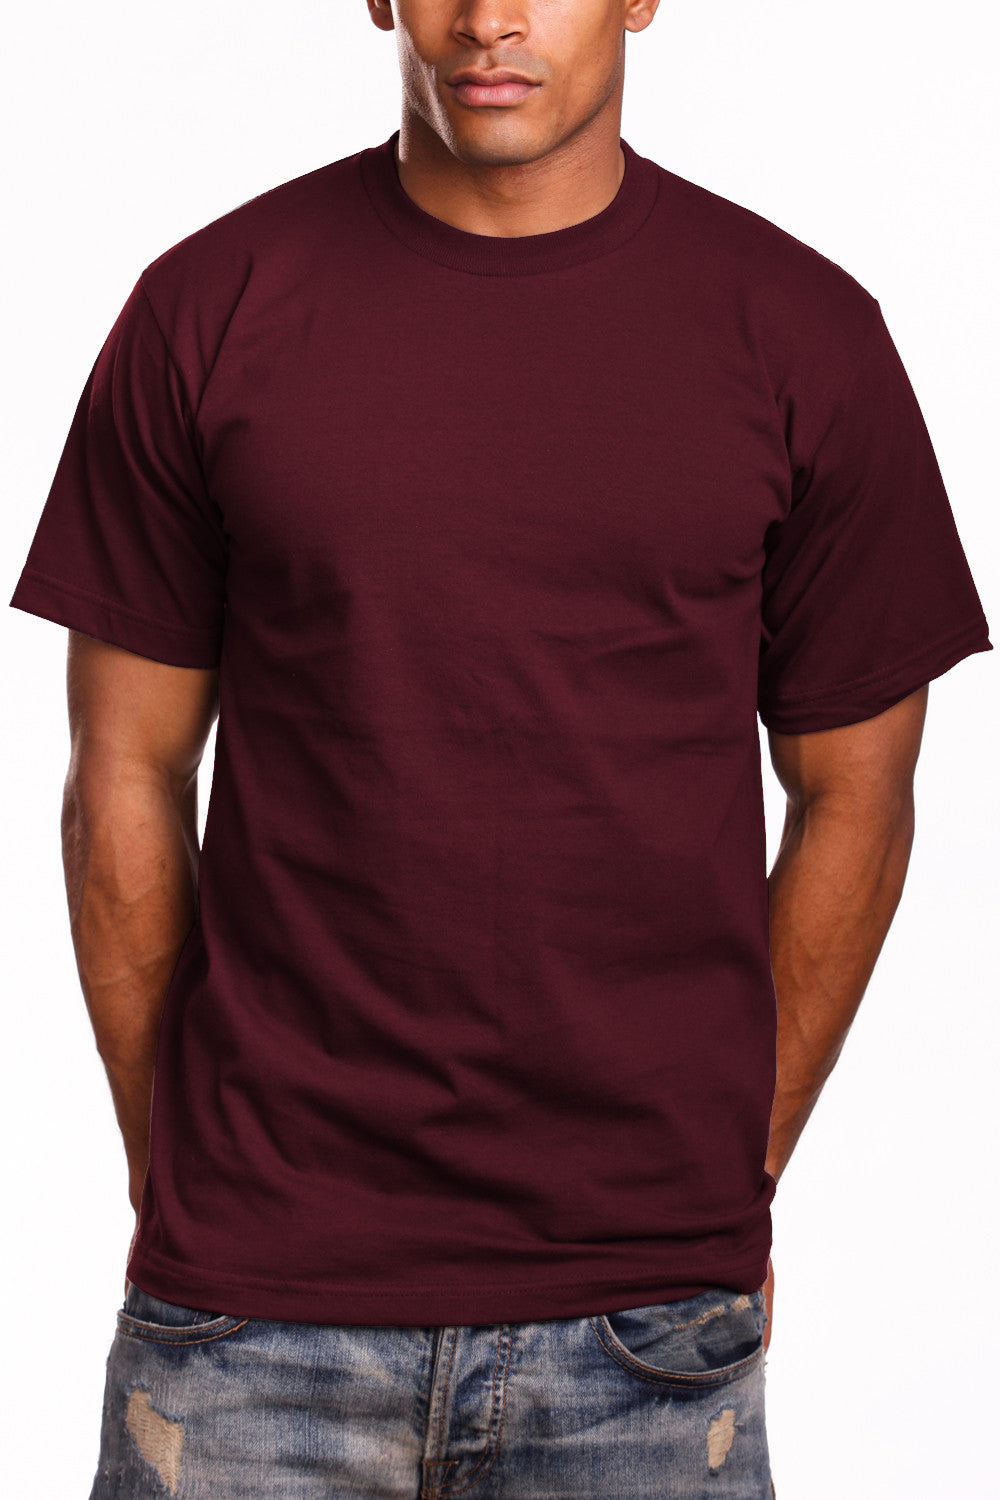 Athletic Fit T-Shirts-Color-2XL-5XL - Pro 5 Apparel